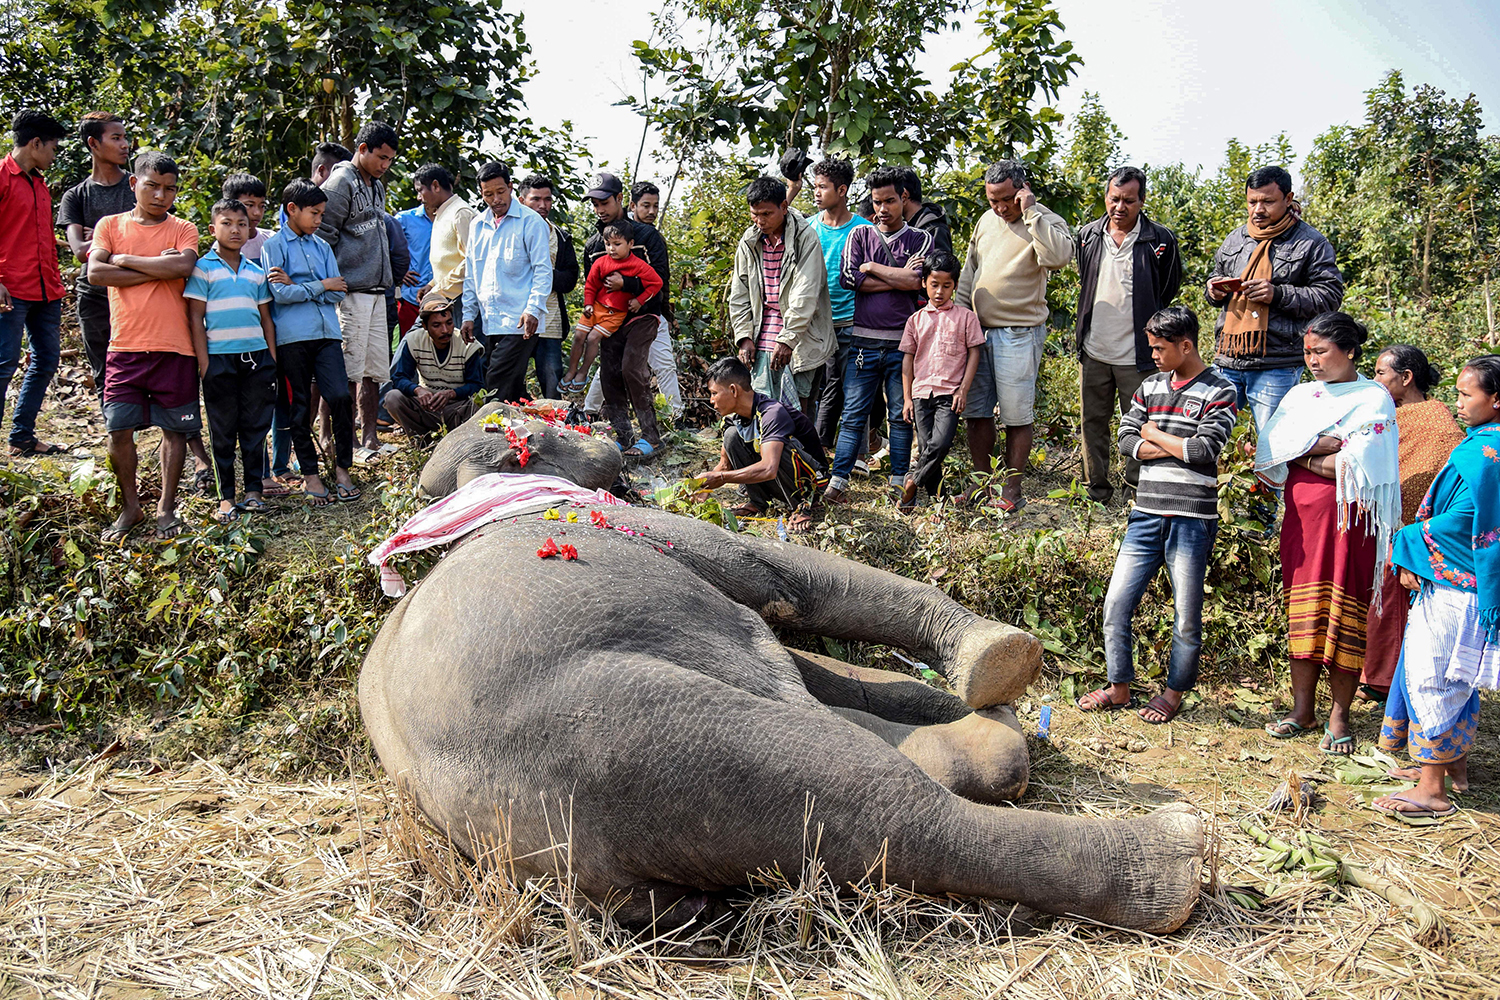 Villagers and forestry workers place flowers on the body of a wild elephant near Bondapara Reserve Forest in India's northeastern state of Assam on Feb. 6. KULENDU KALITA/AFP via Getty Images